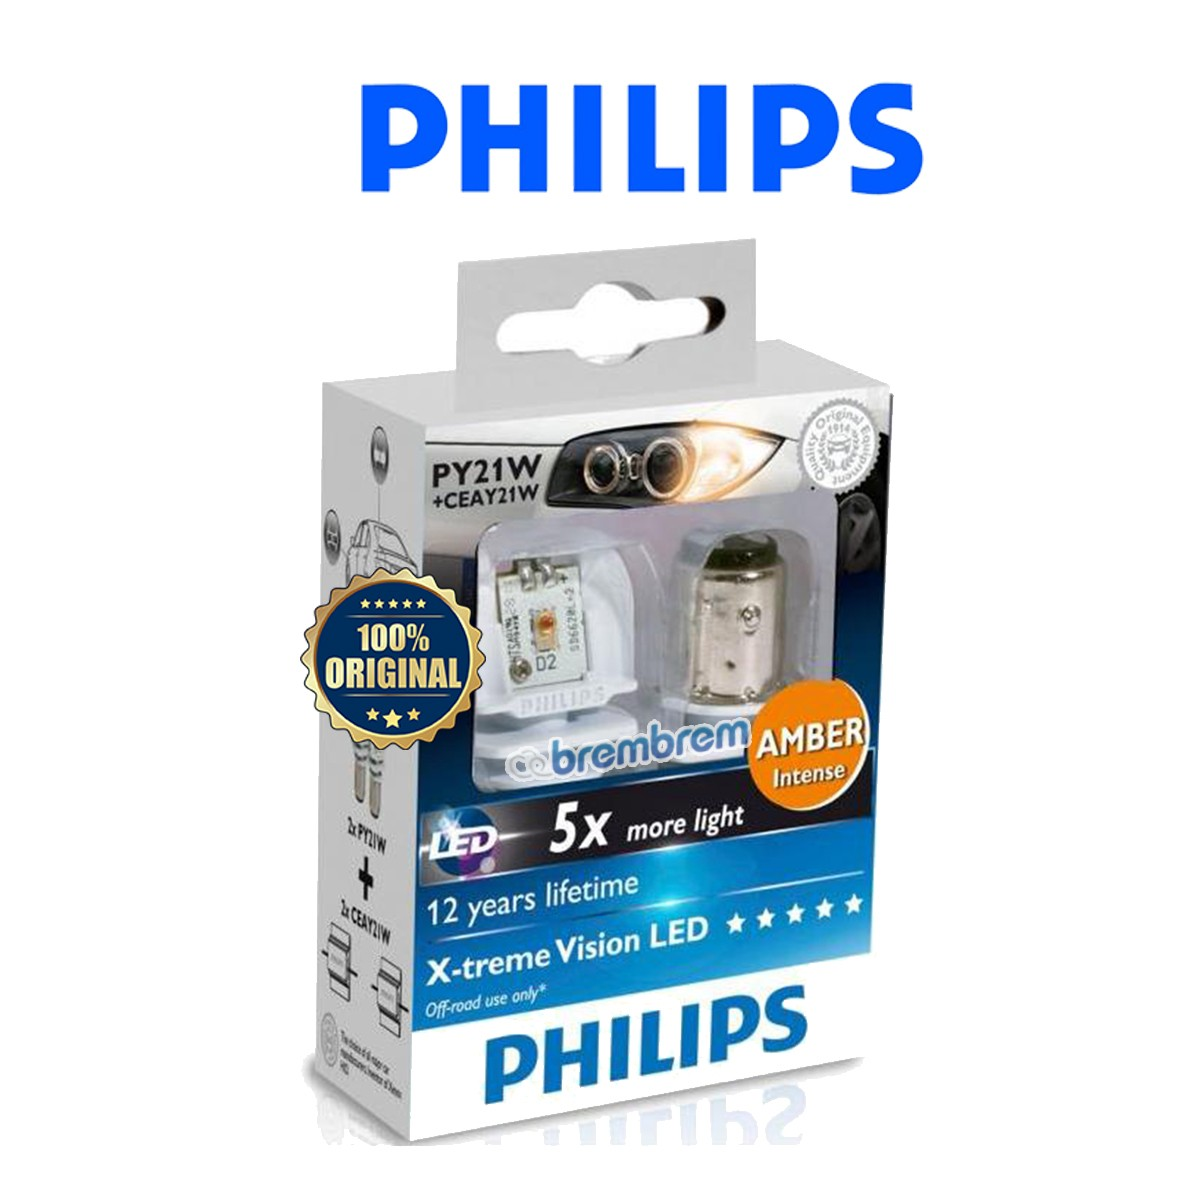 PHILIPS XTREME VISION PY21W + CEAY21W - LAMPU LED MOBIL